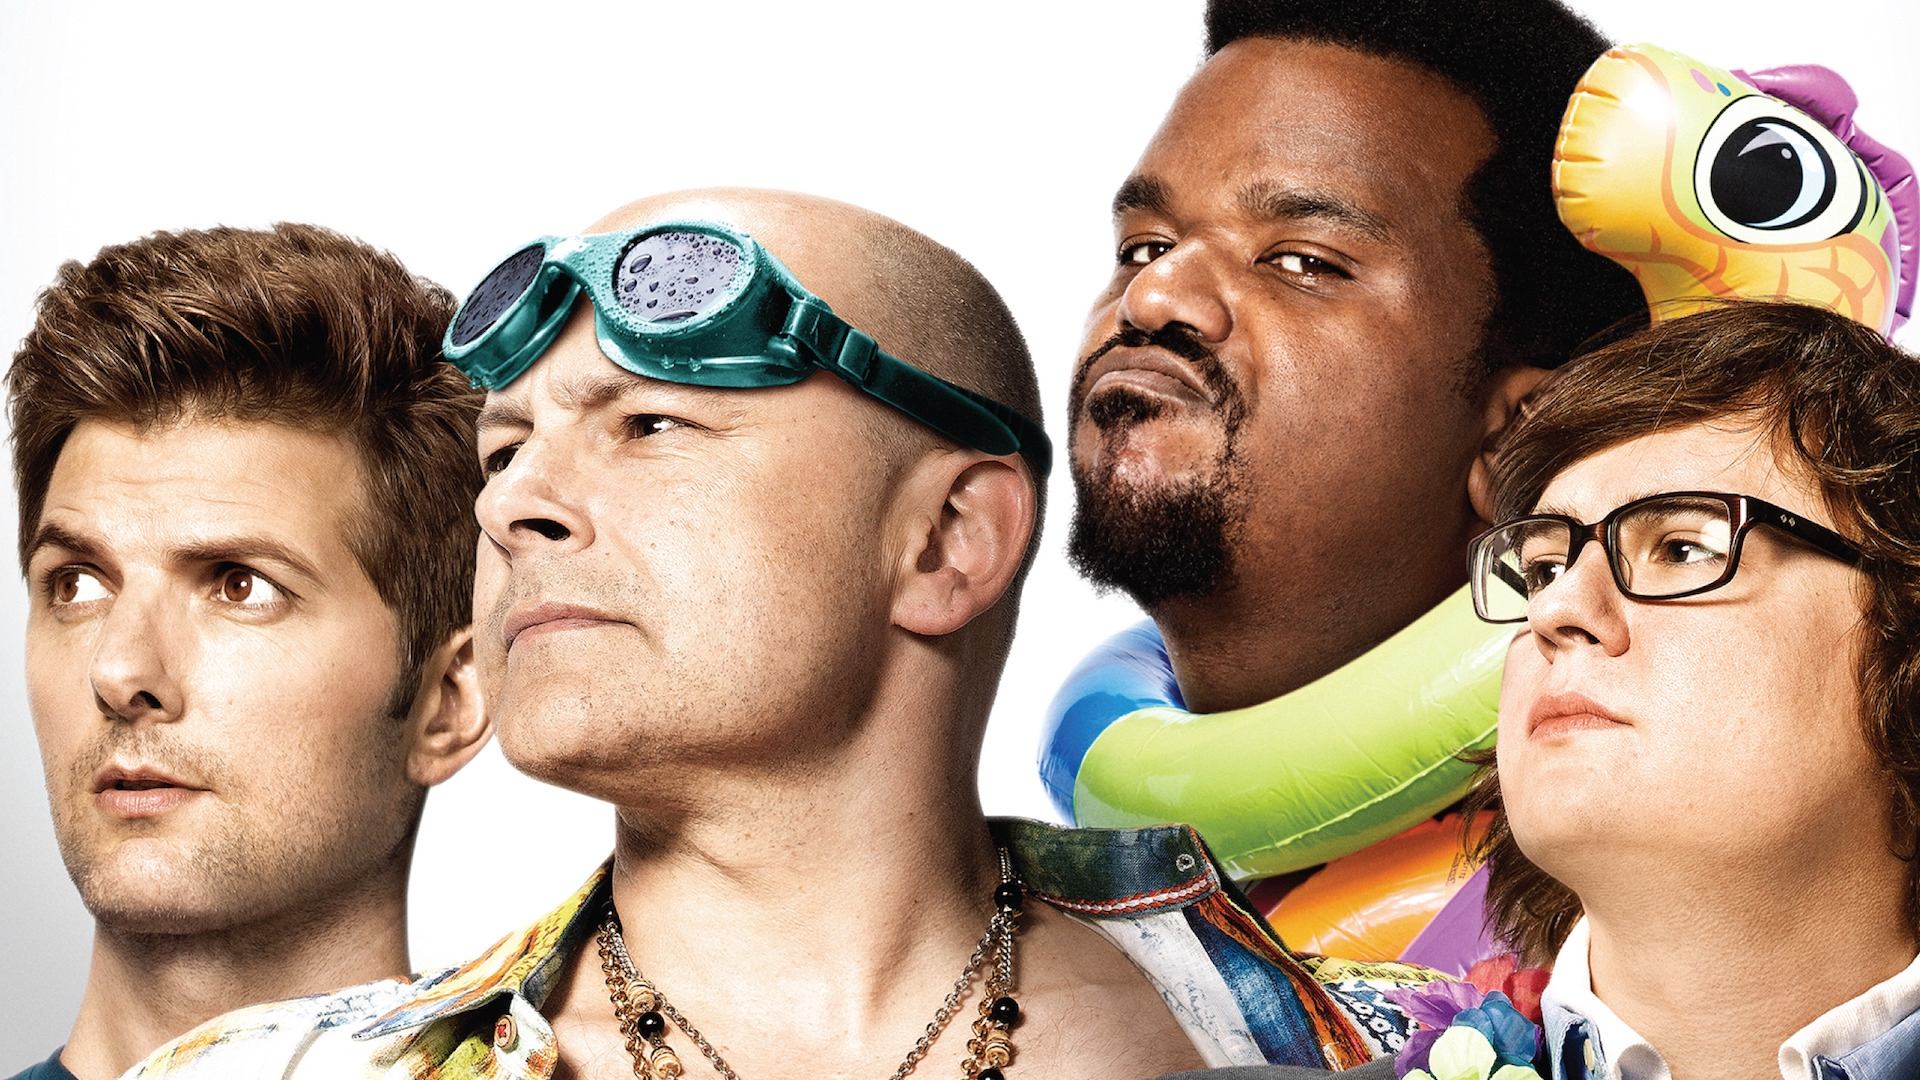 Hot Tub Time Machine 2 2015 Rob Corddry Craig Robinson Clark Duke 1920x1080